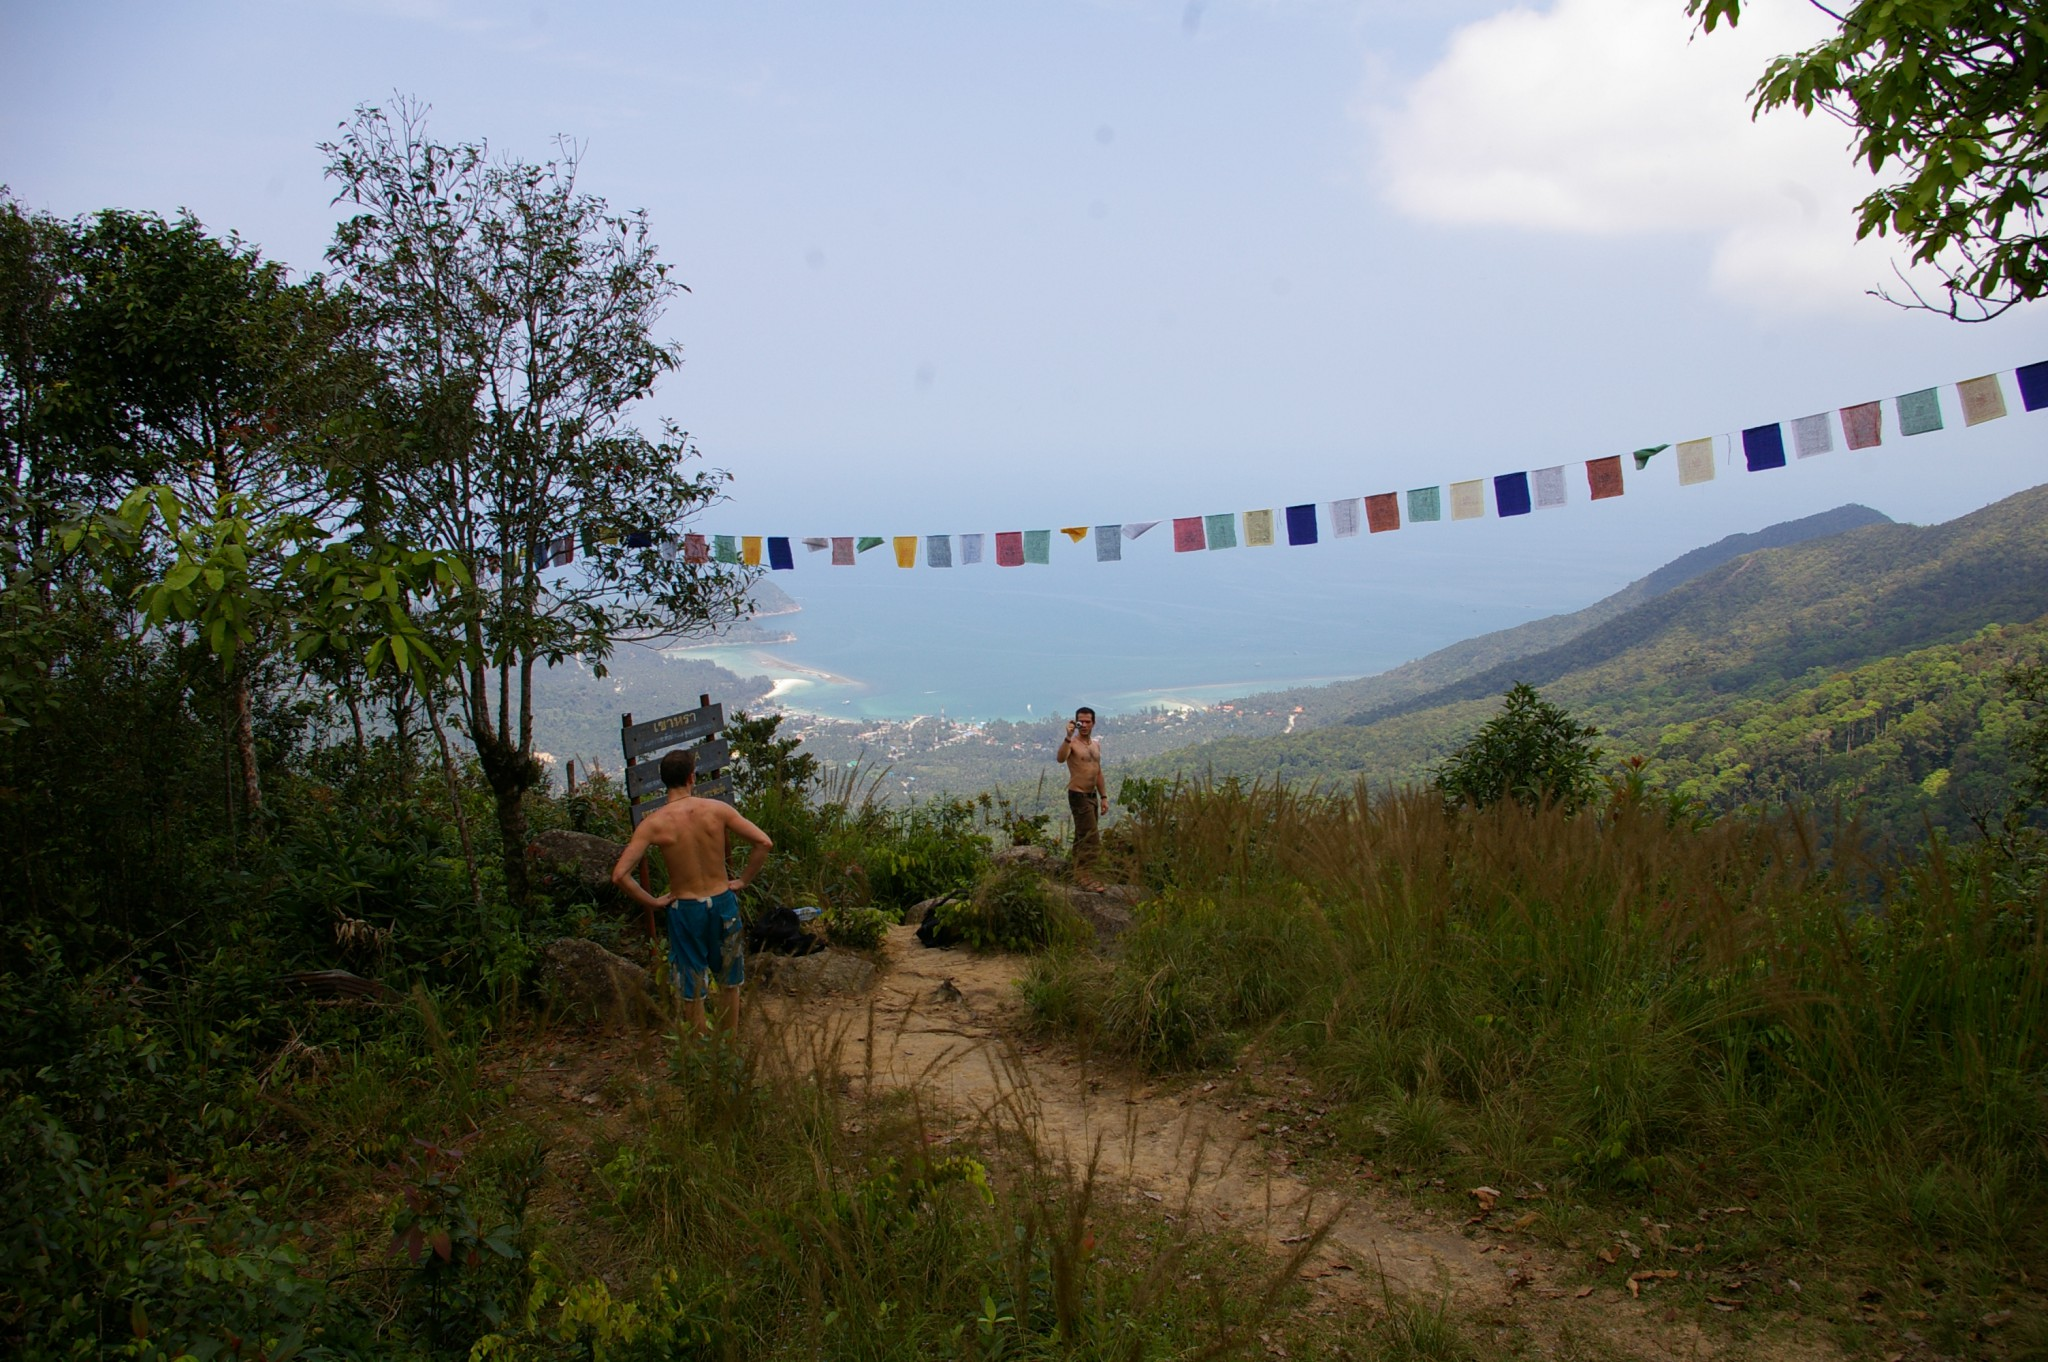 The view from Khao Ra